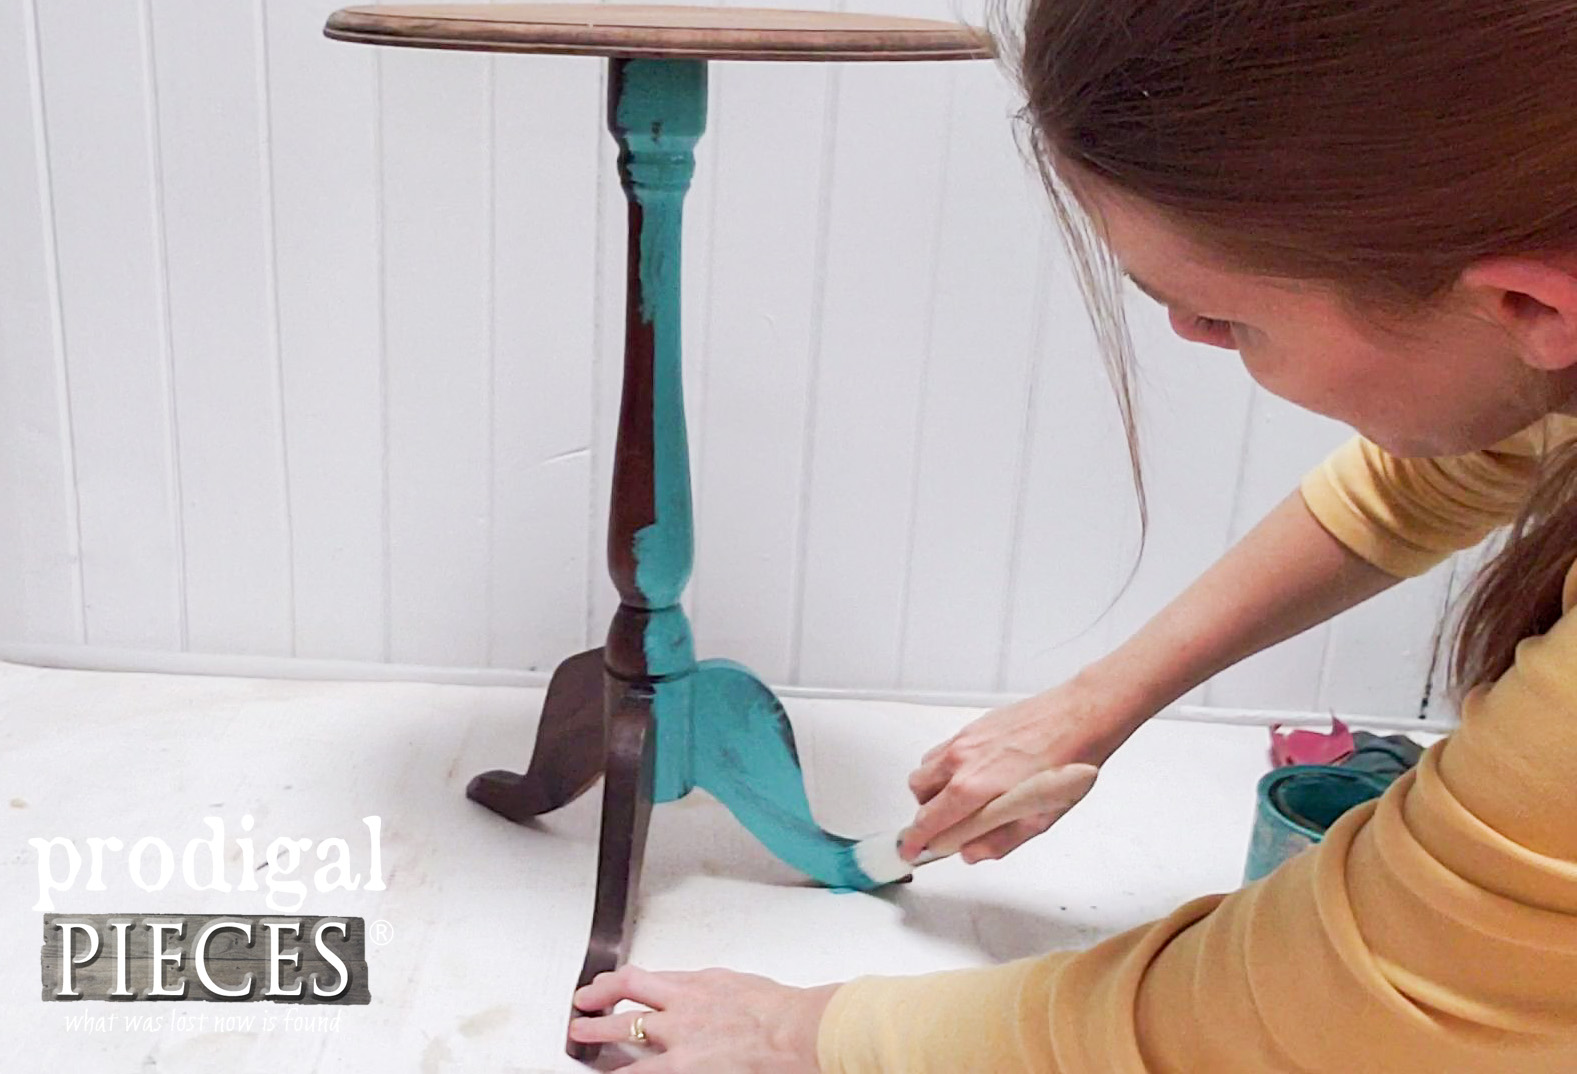 Painting Accent Pedestal Table with Zibra Round Brush | prodigalpieces.com